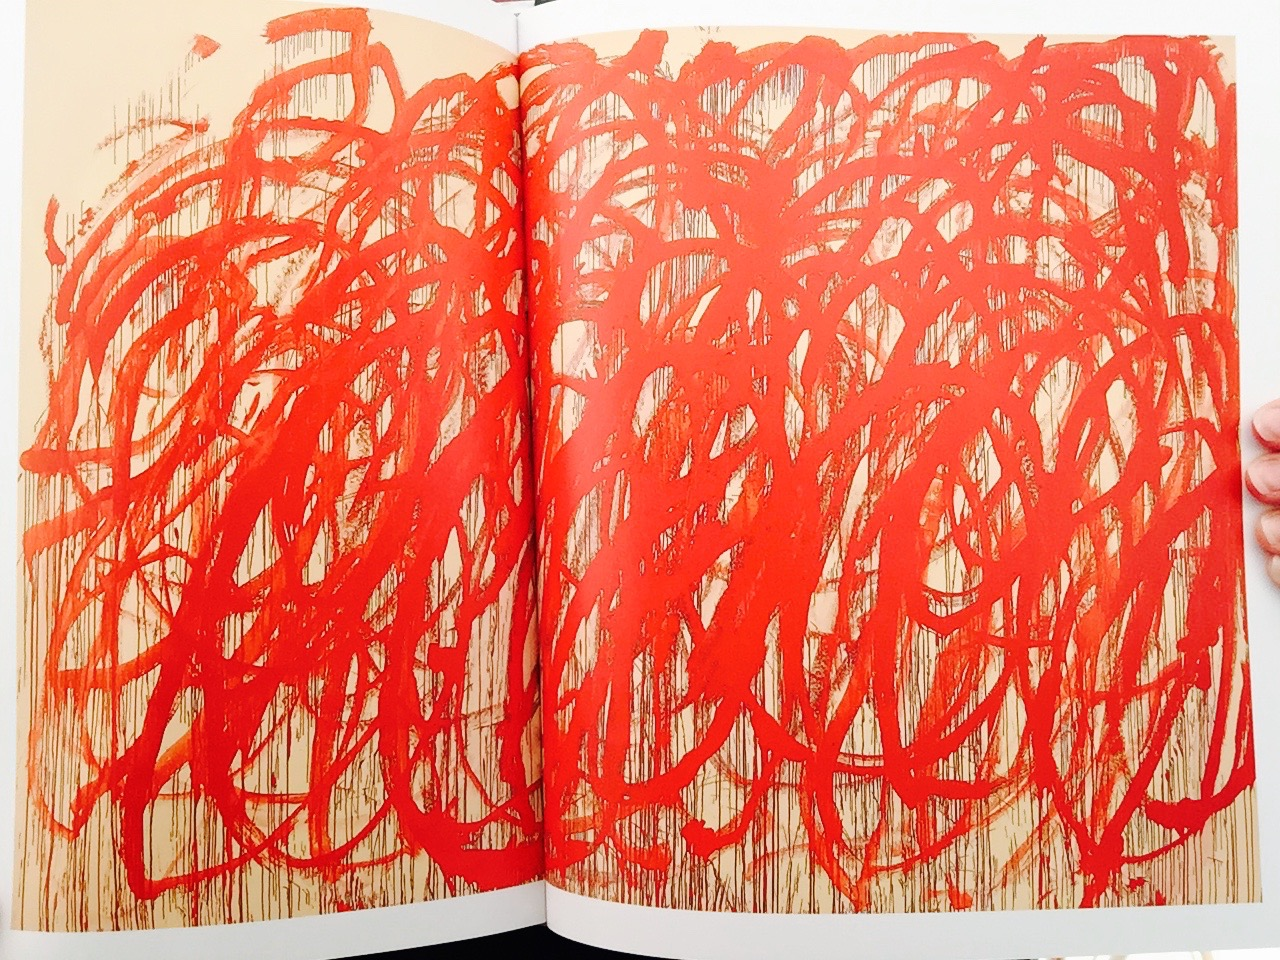 Twombly6